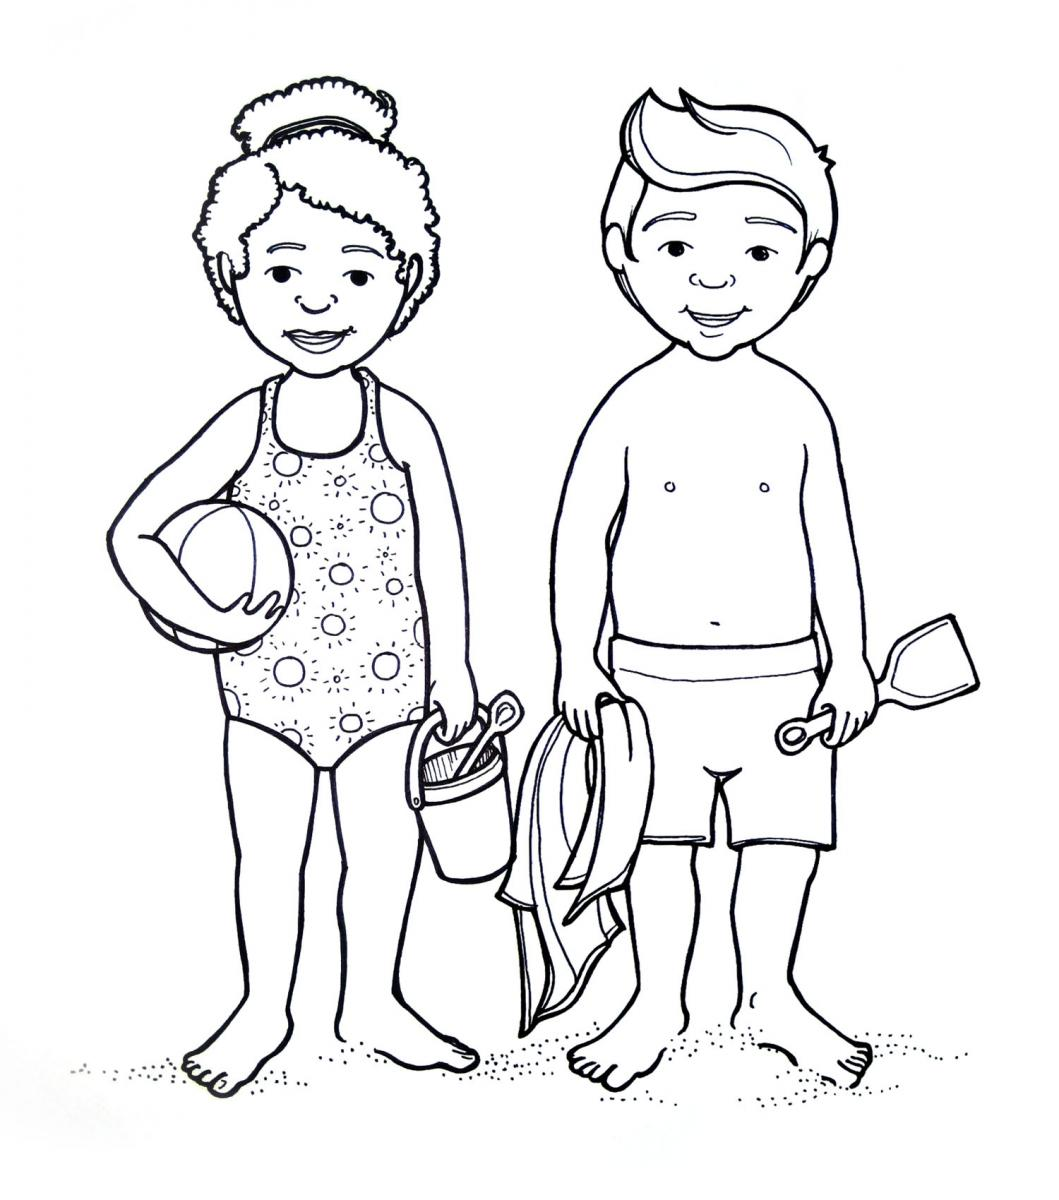 1059x1200 Coloring Pages Female Body Body Parts For Kids Coloring Pages